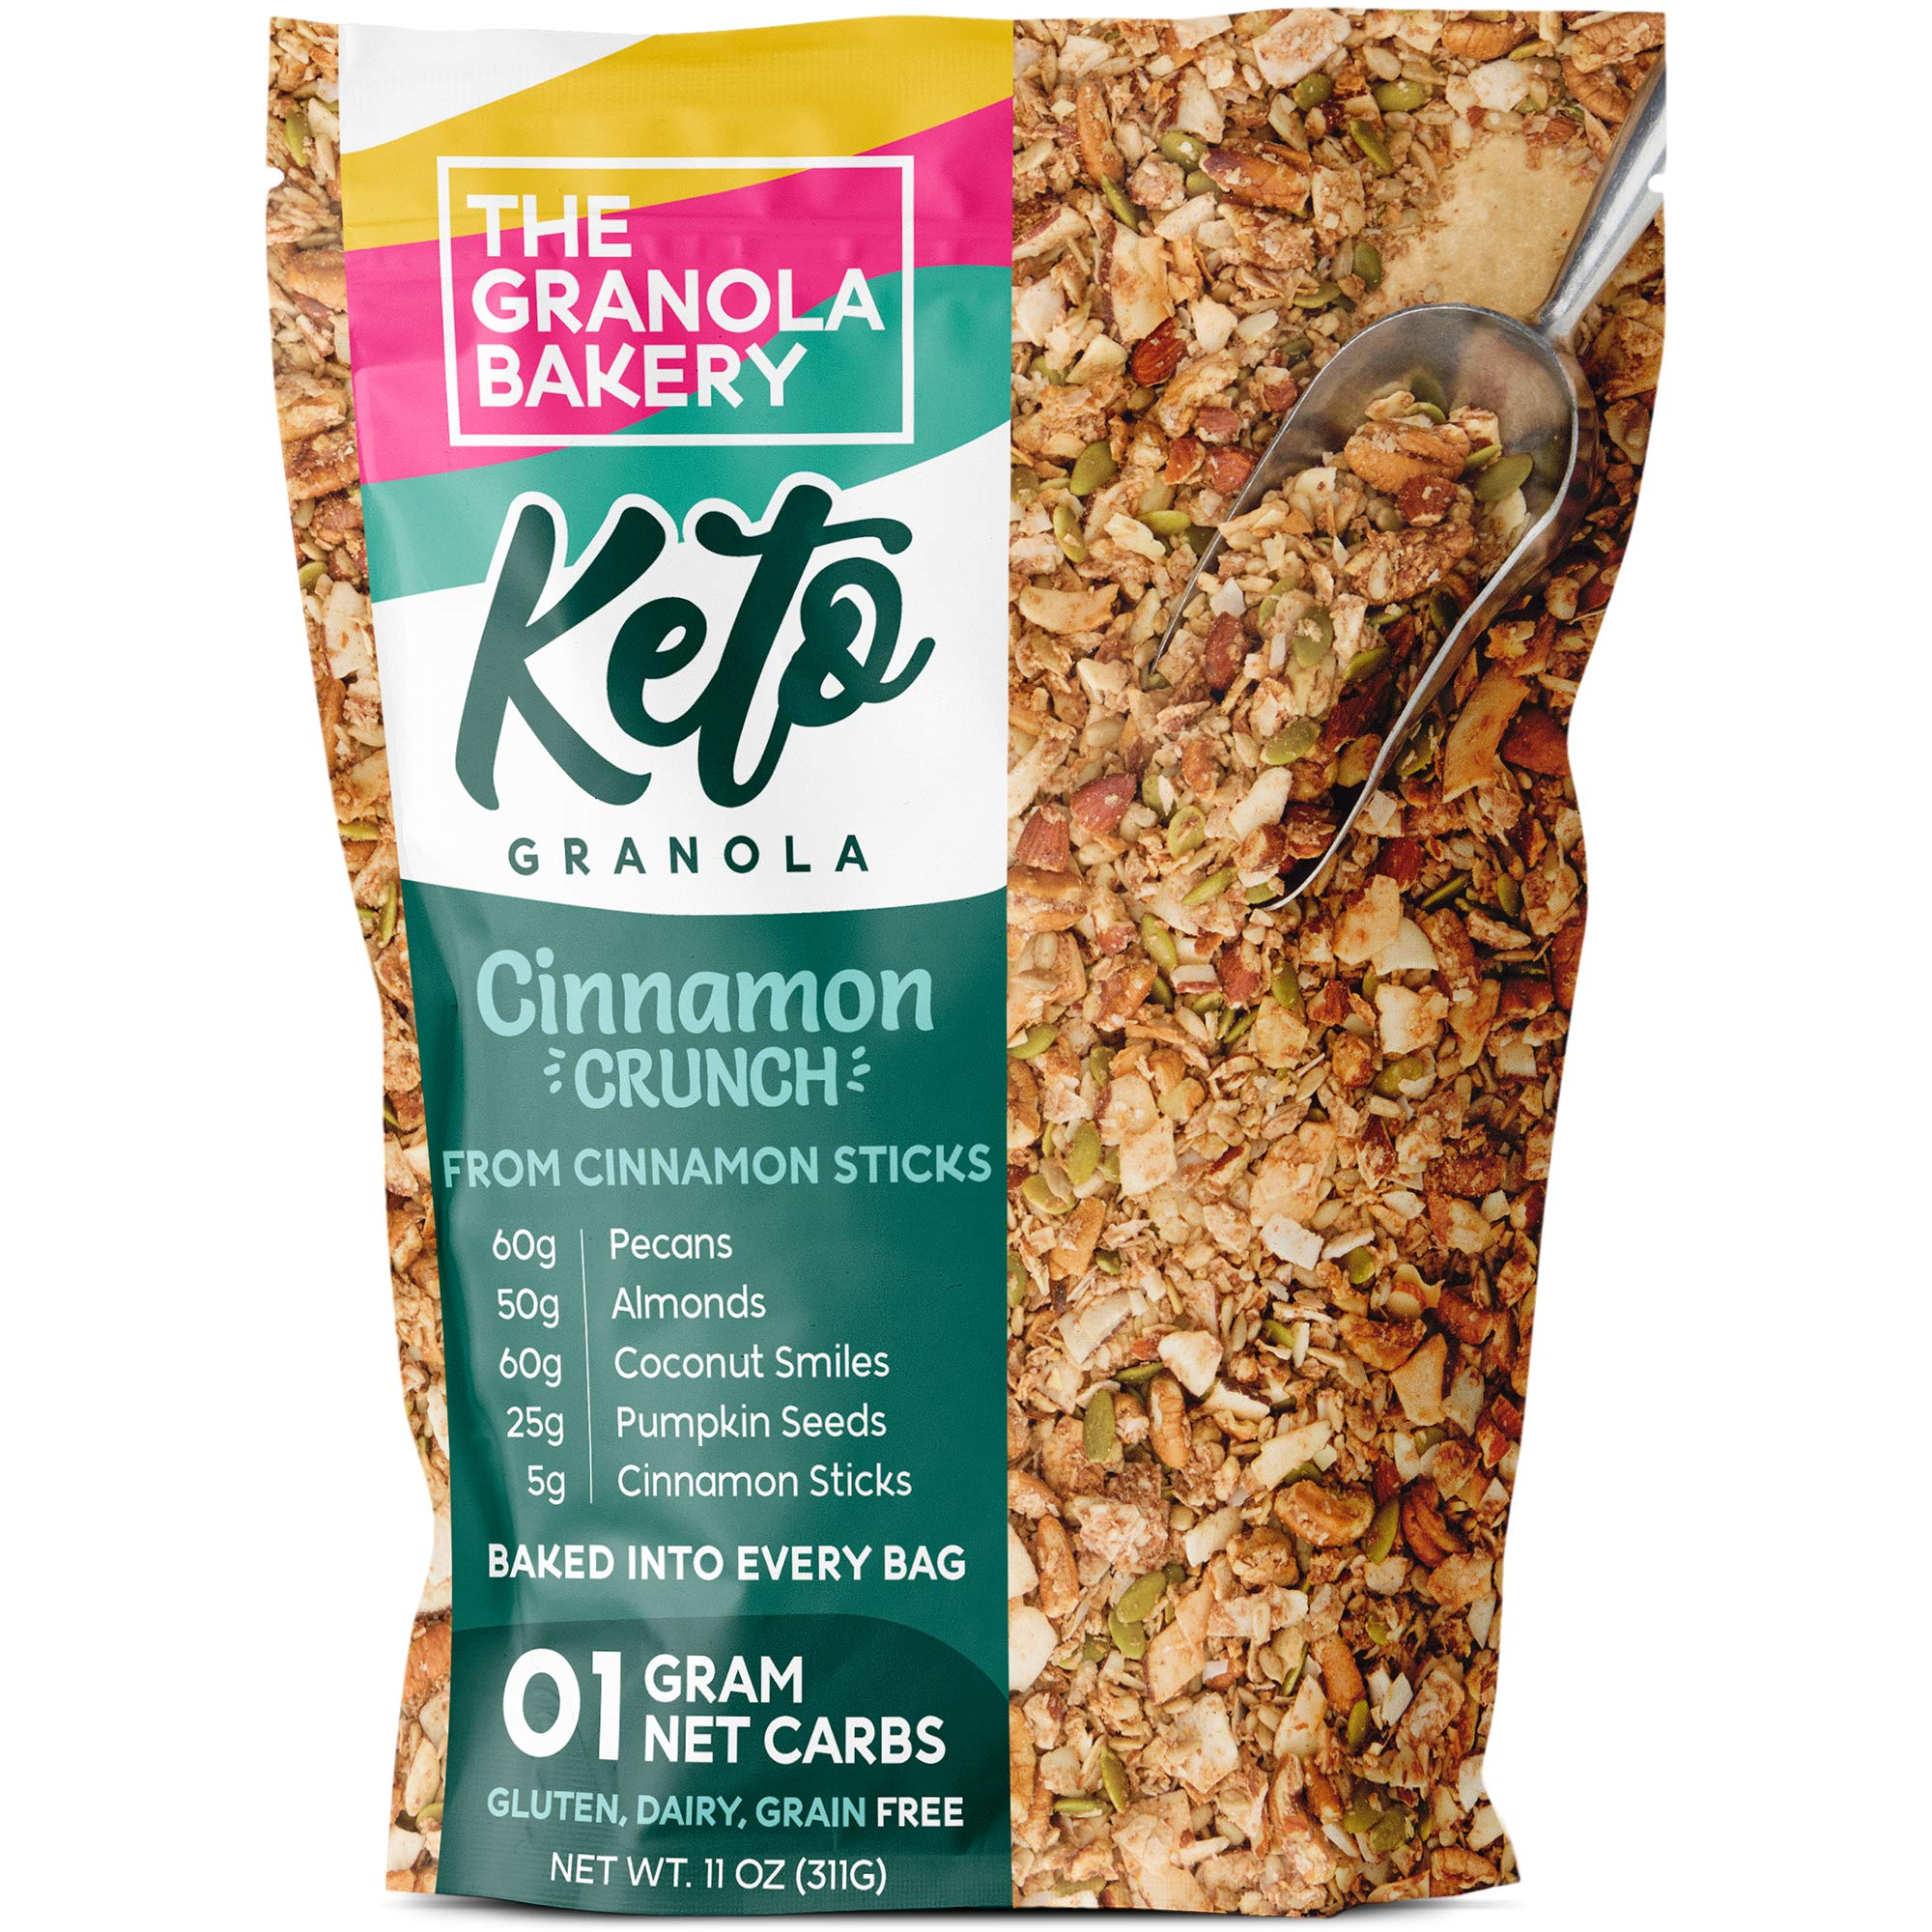 TGB Cinnamon Pecan Keto Granola | 1g Net Carb Snack | Low Carb Nut Cereal | Healthy Artisanal Food, 11 Ounces